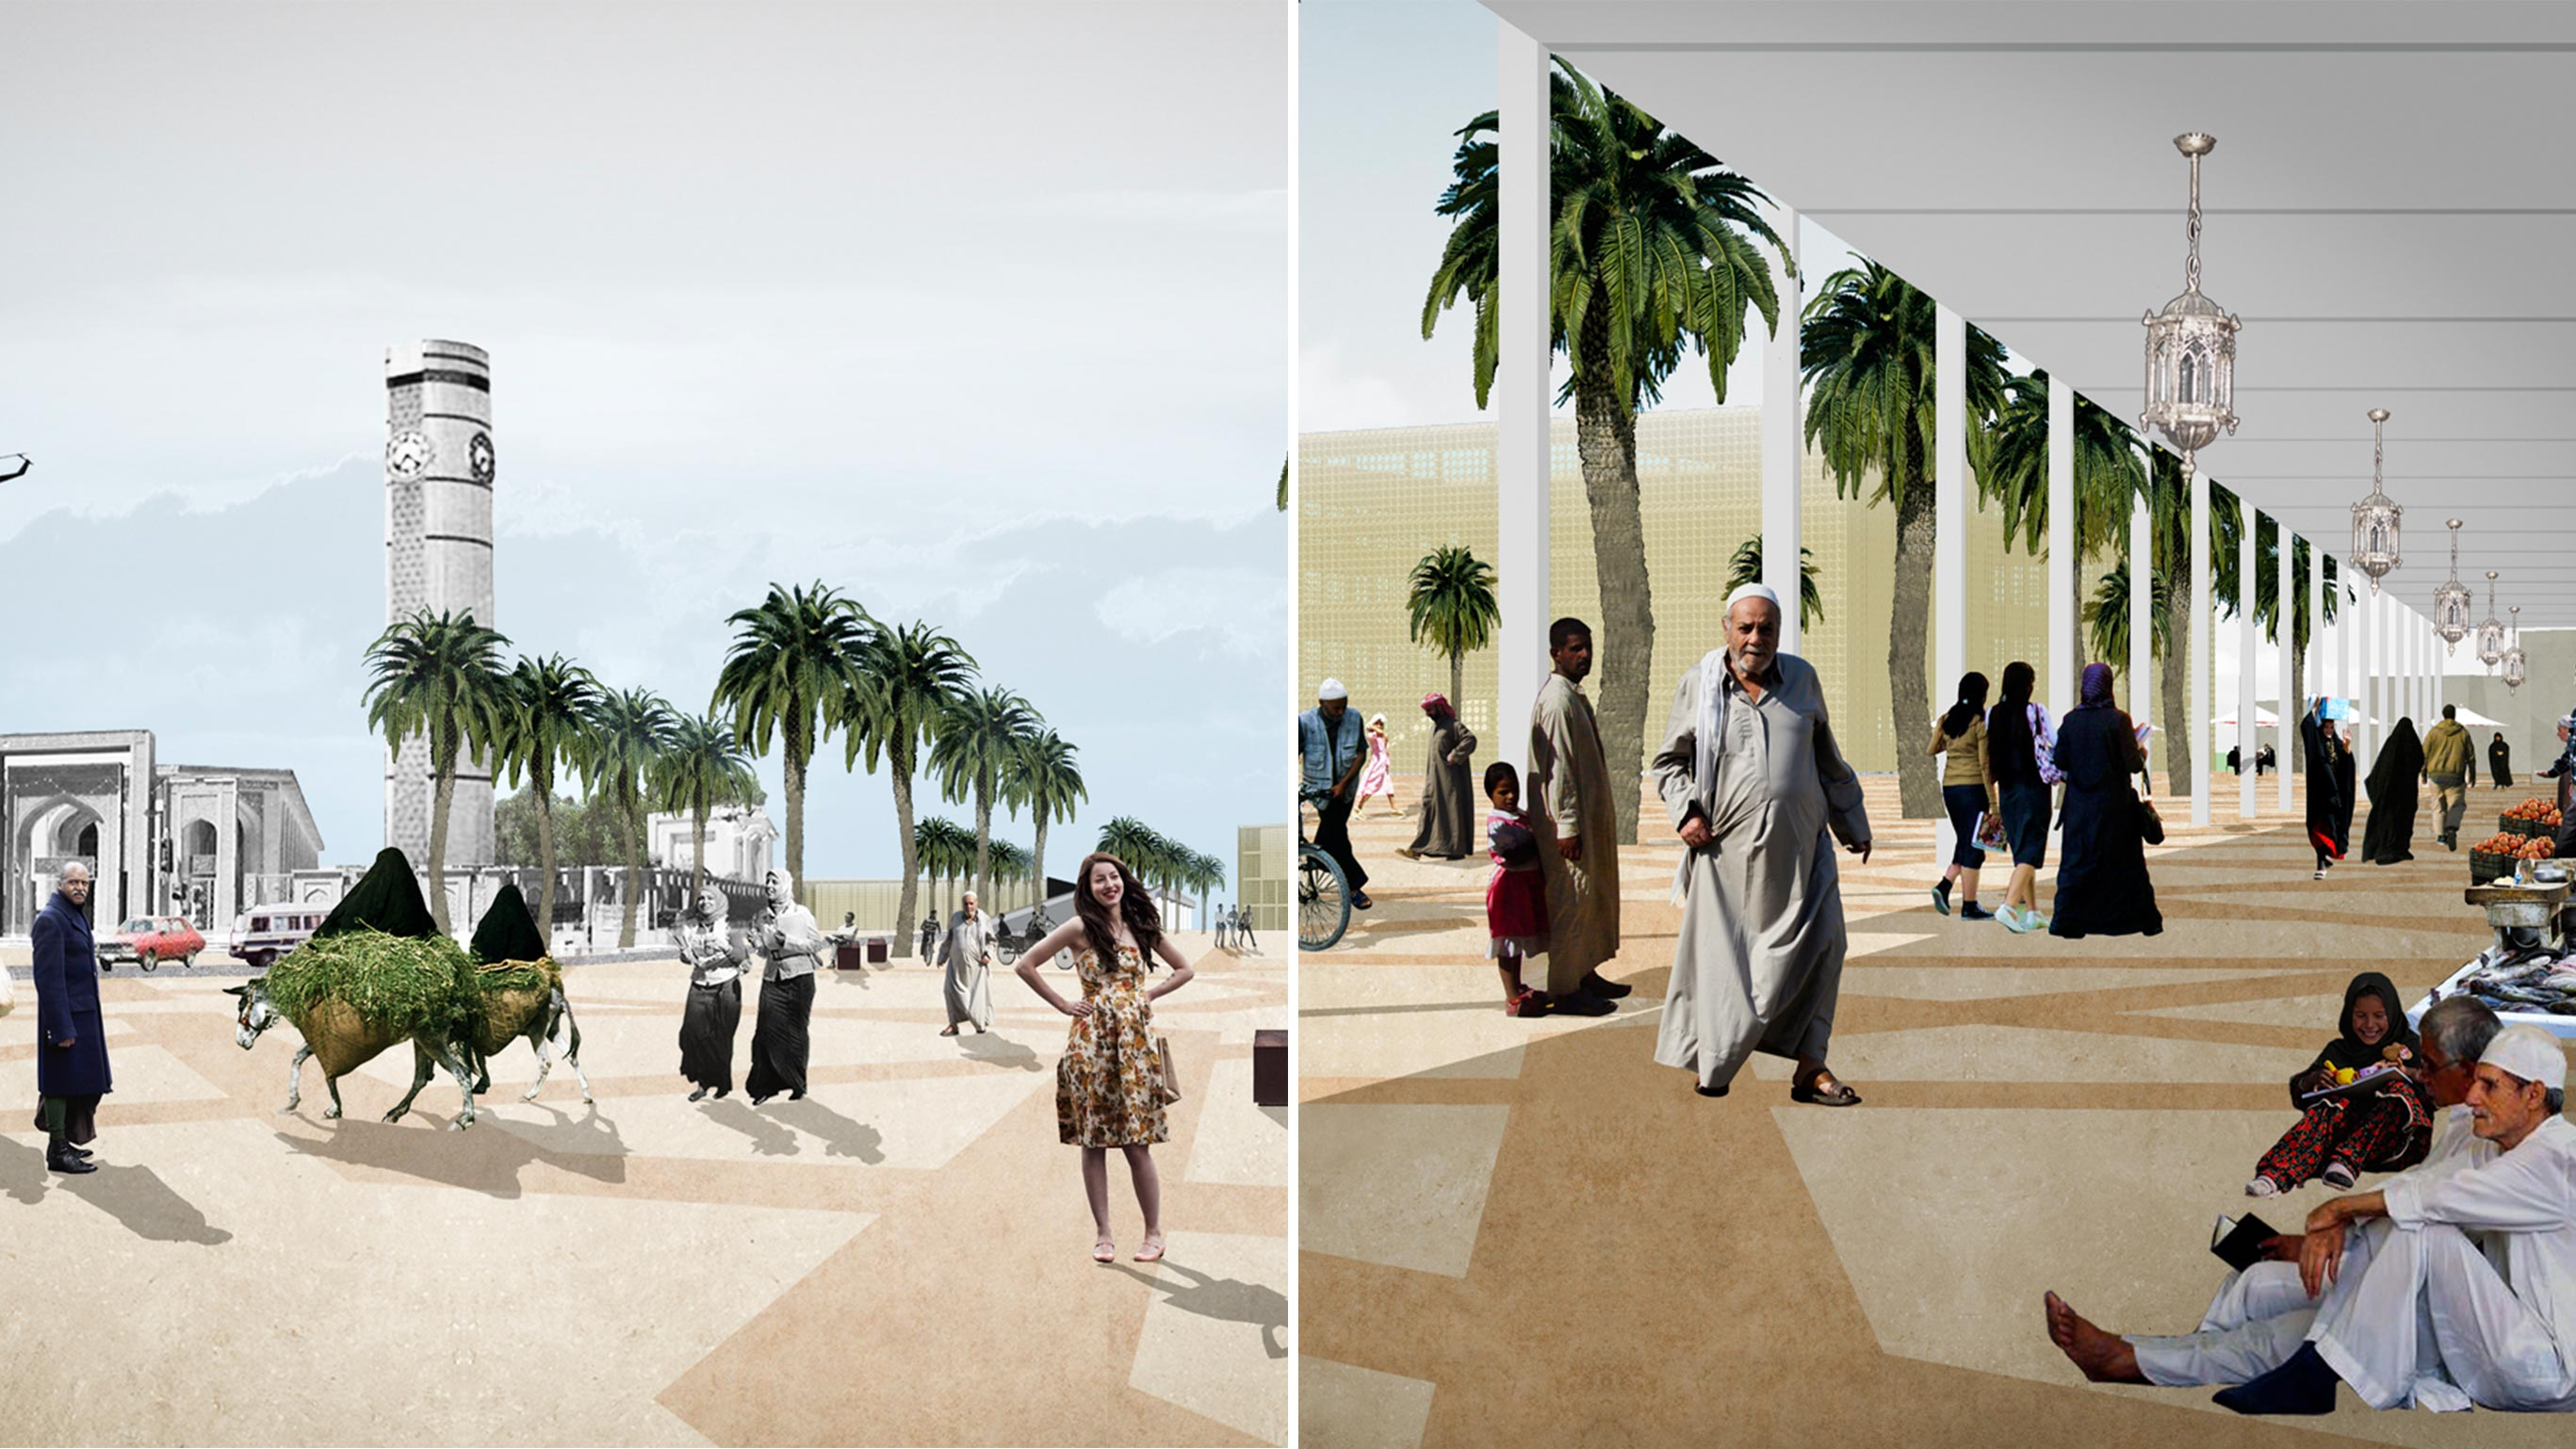 Al Adhamiya — Urban Transformation Strategy